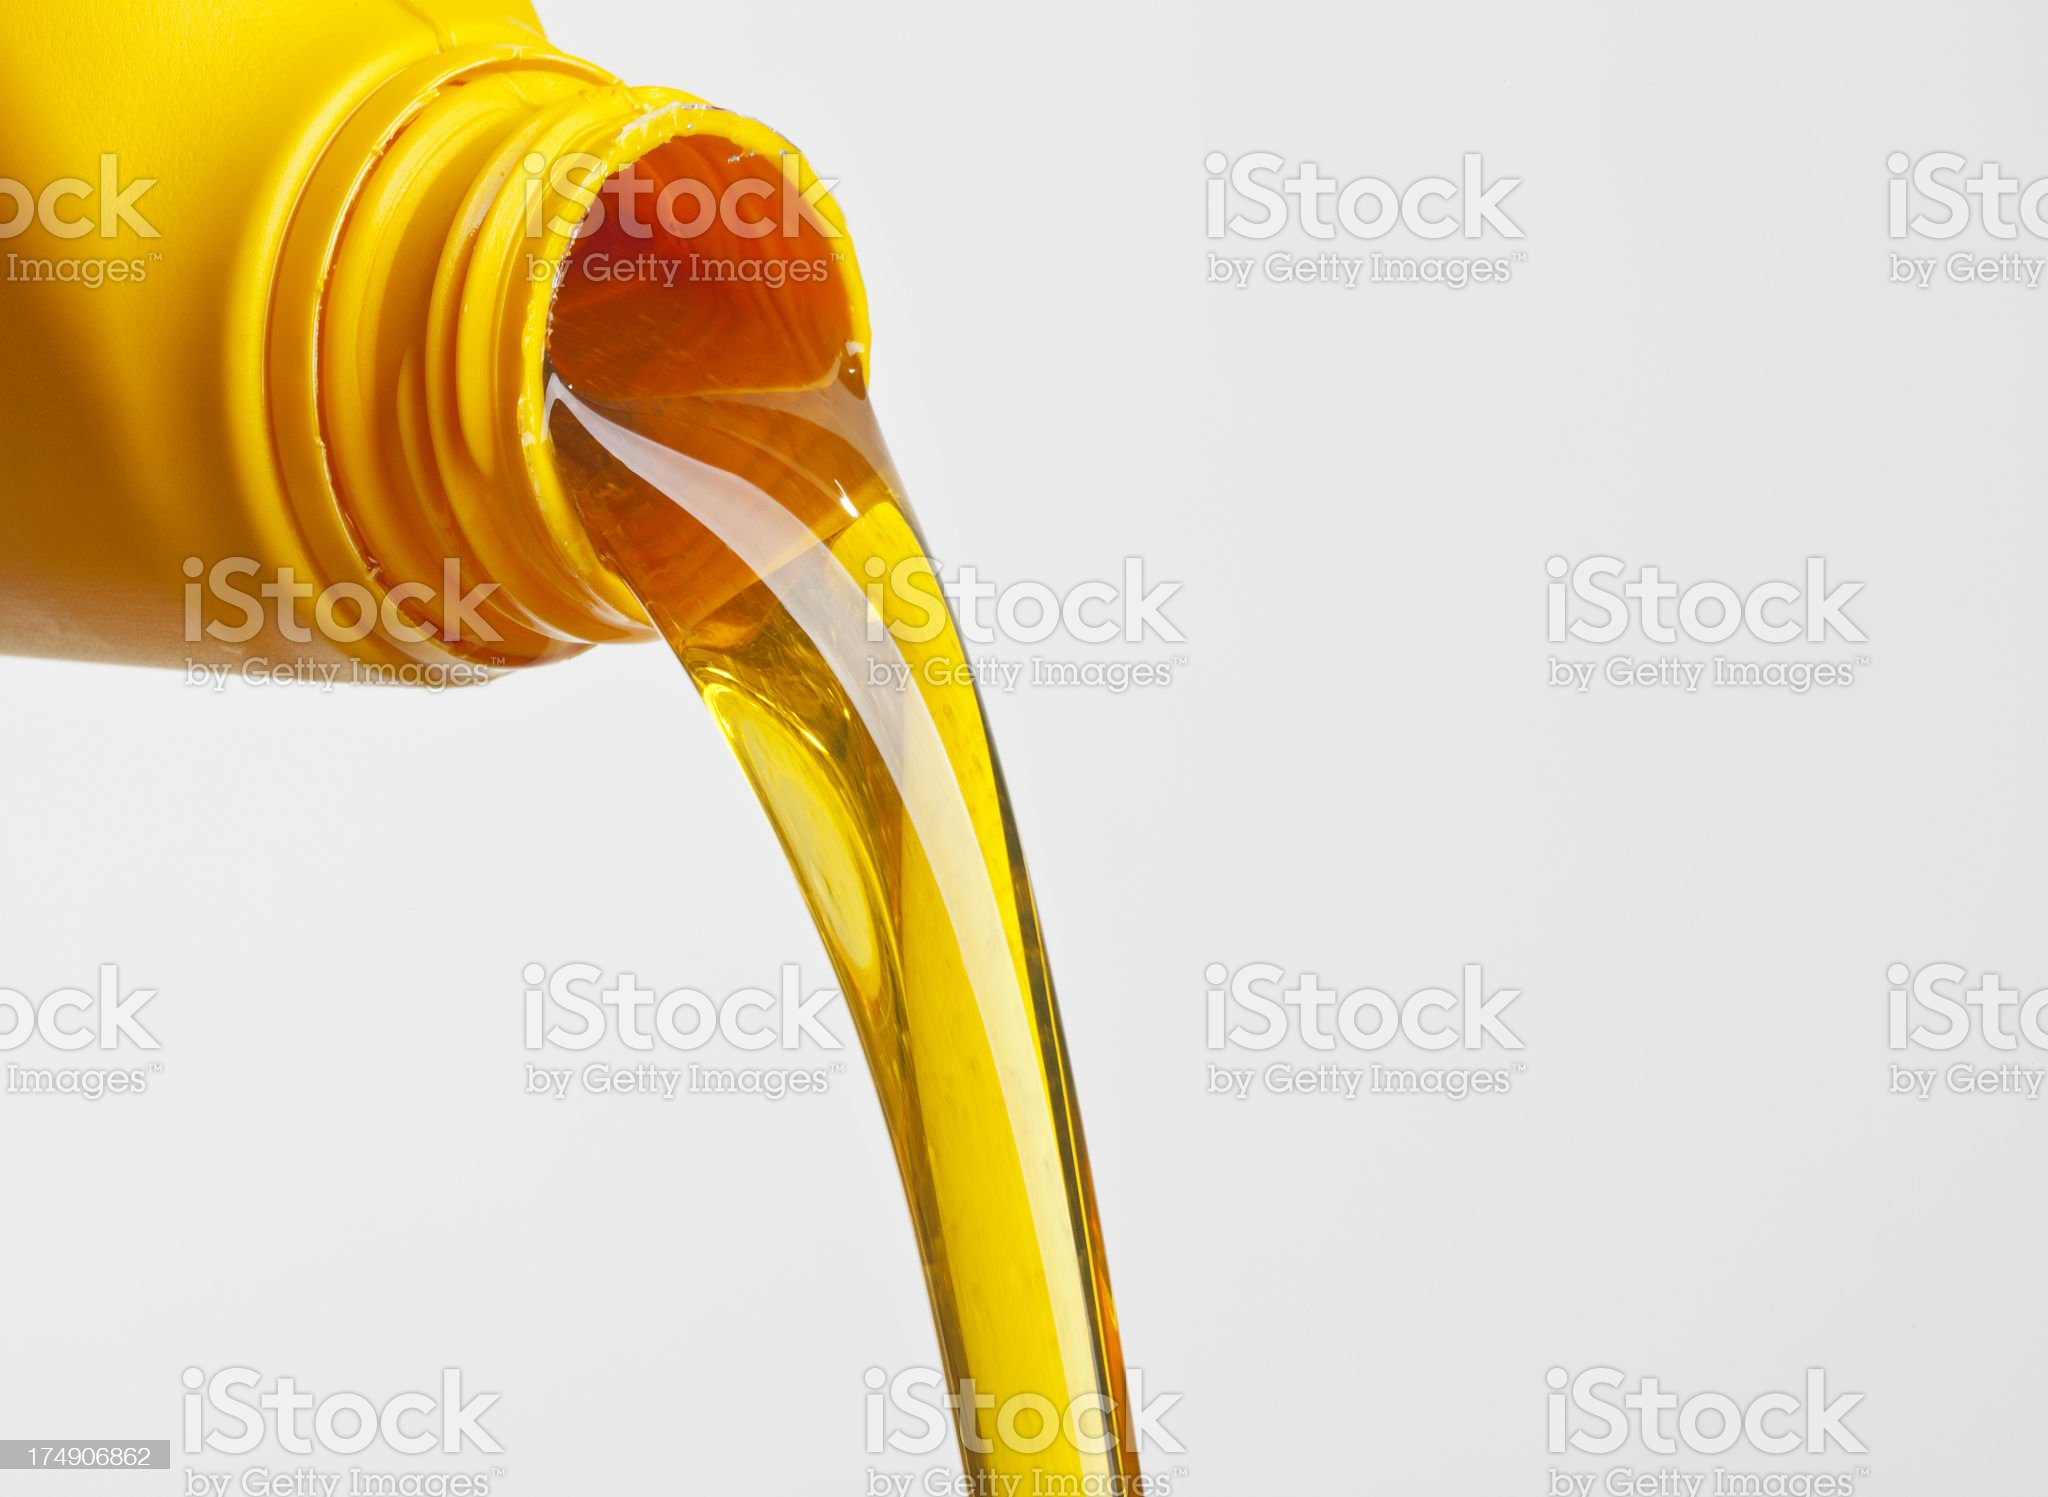 Oil pouring from a plastic bottle royalty-free stock photo